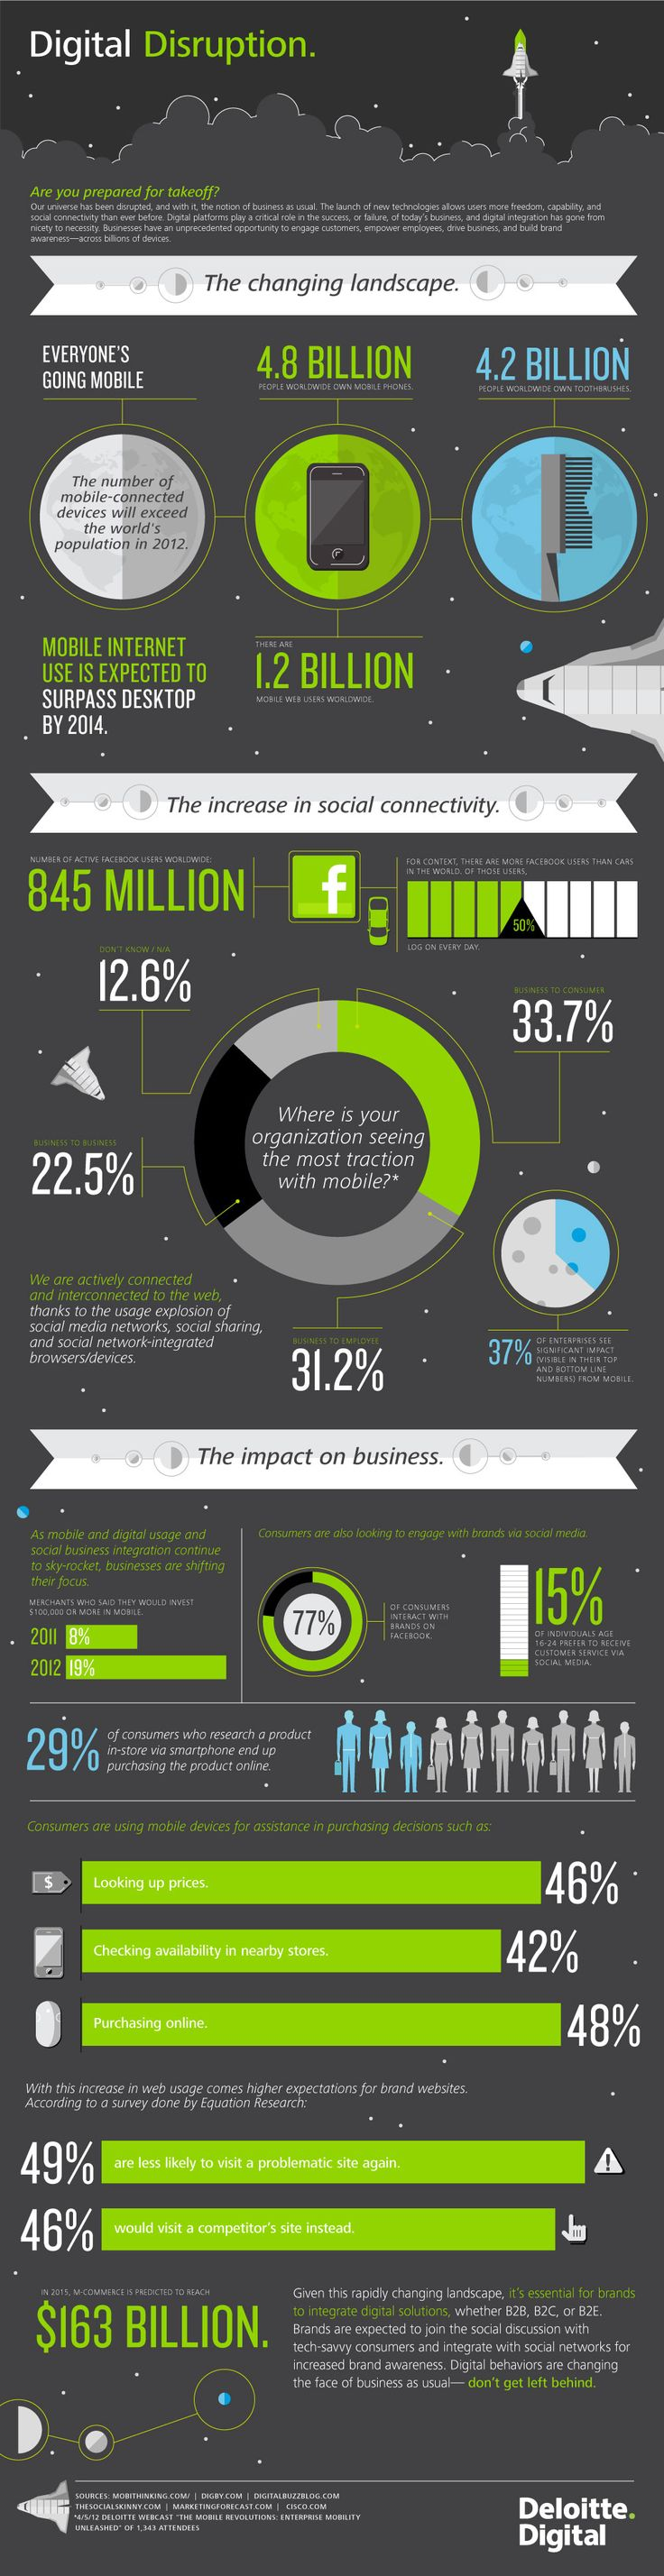 Digital Disruption #MCommerce #Infographic